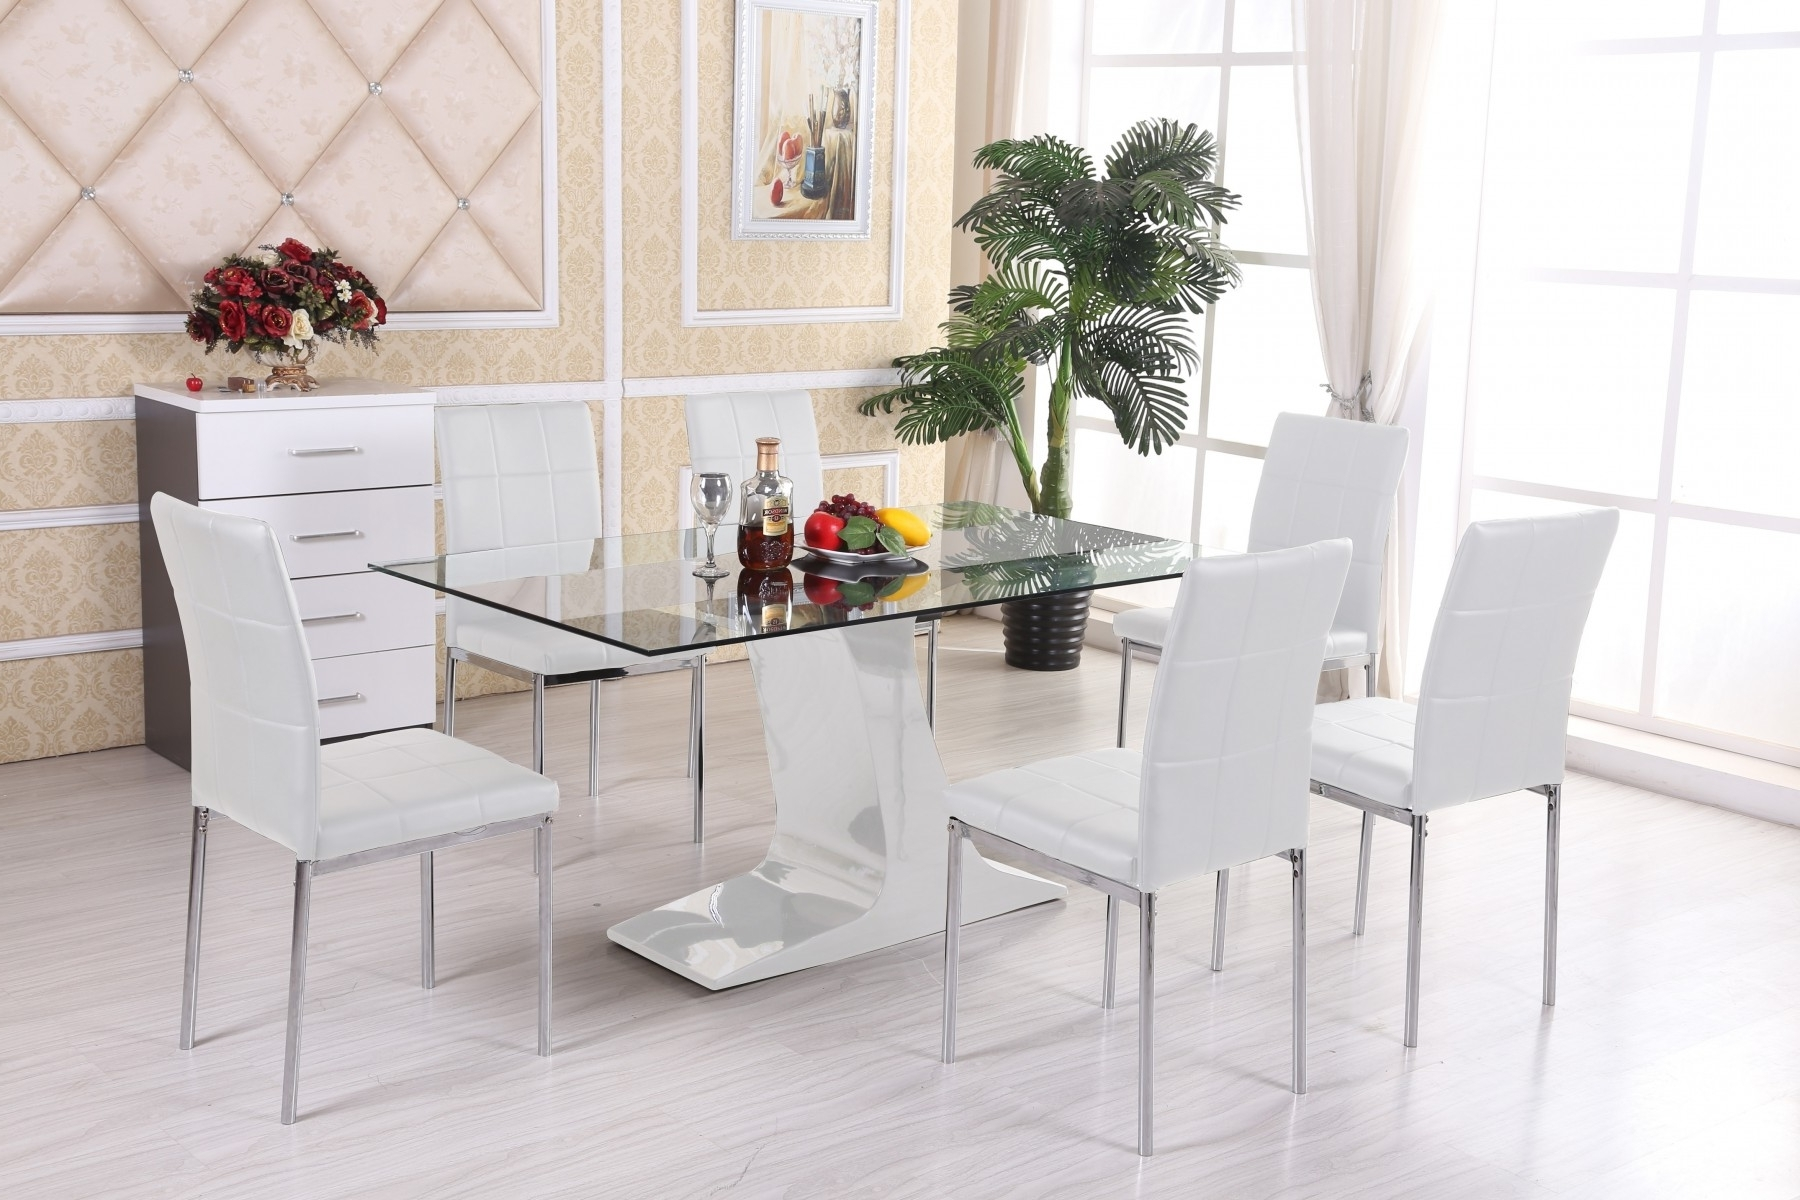 4 Optimal Choices In Glass Dining Table And Chairs – Blogbeen With Most Up To Date Glass Dining Tables 6 Chairs (View 7 of 25)